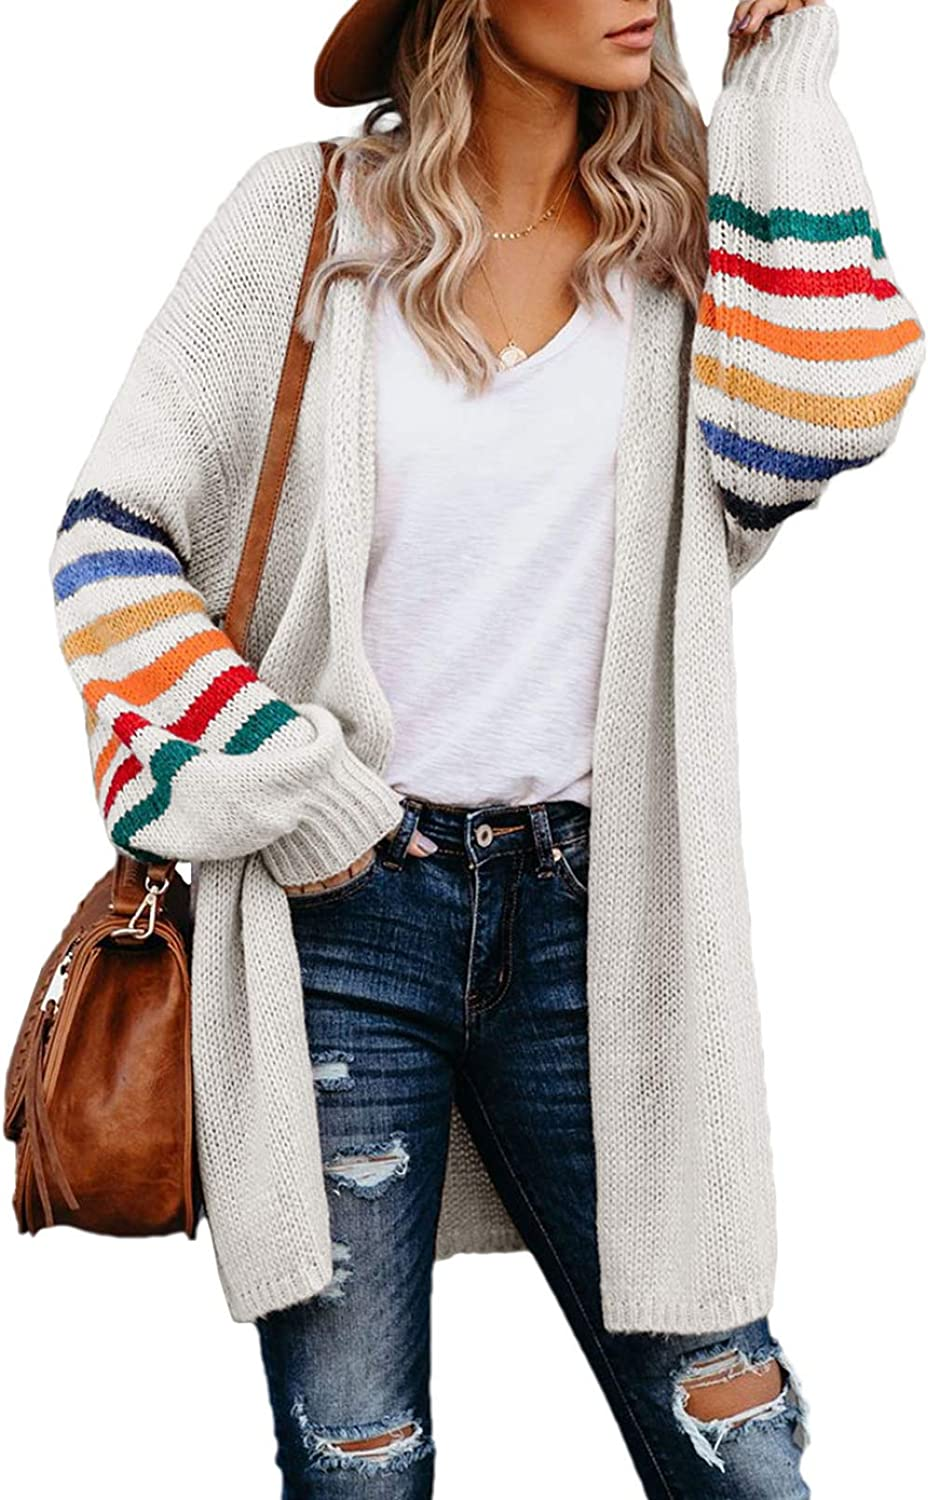 LOSRLY Womens Long Sleeve Open Front Cardigans Striped Color Block Knit Sweaters Casual Outwear Coat